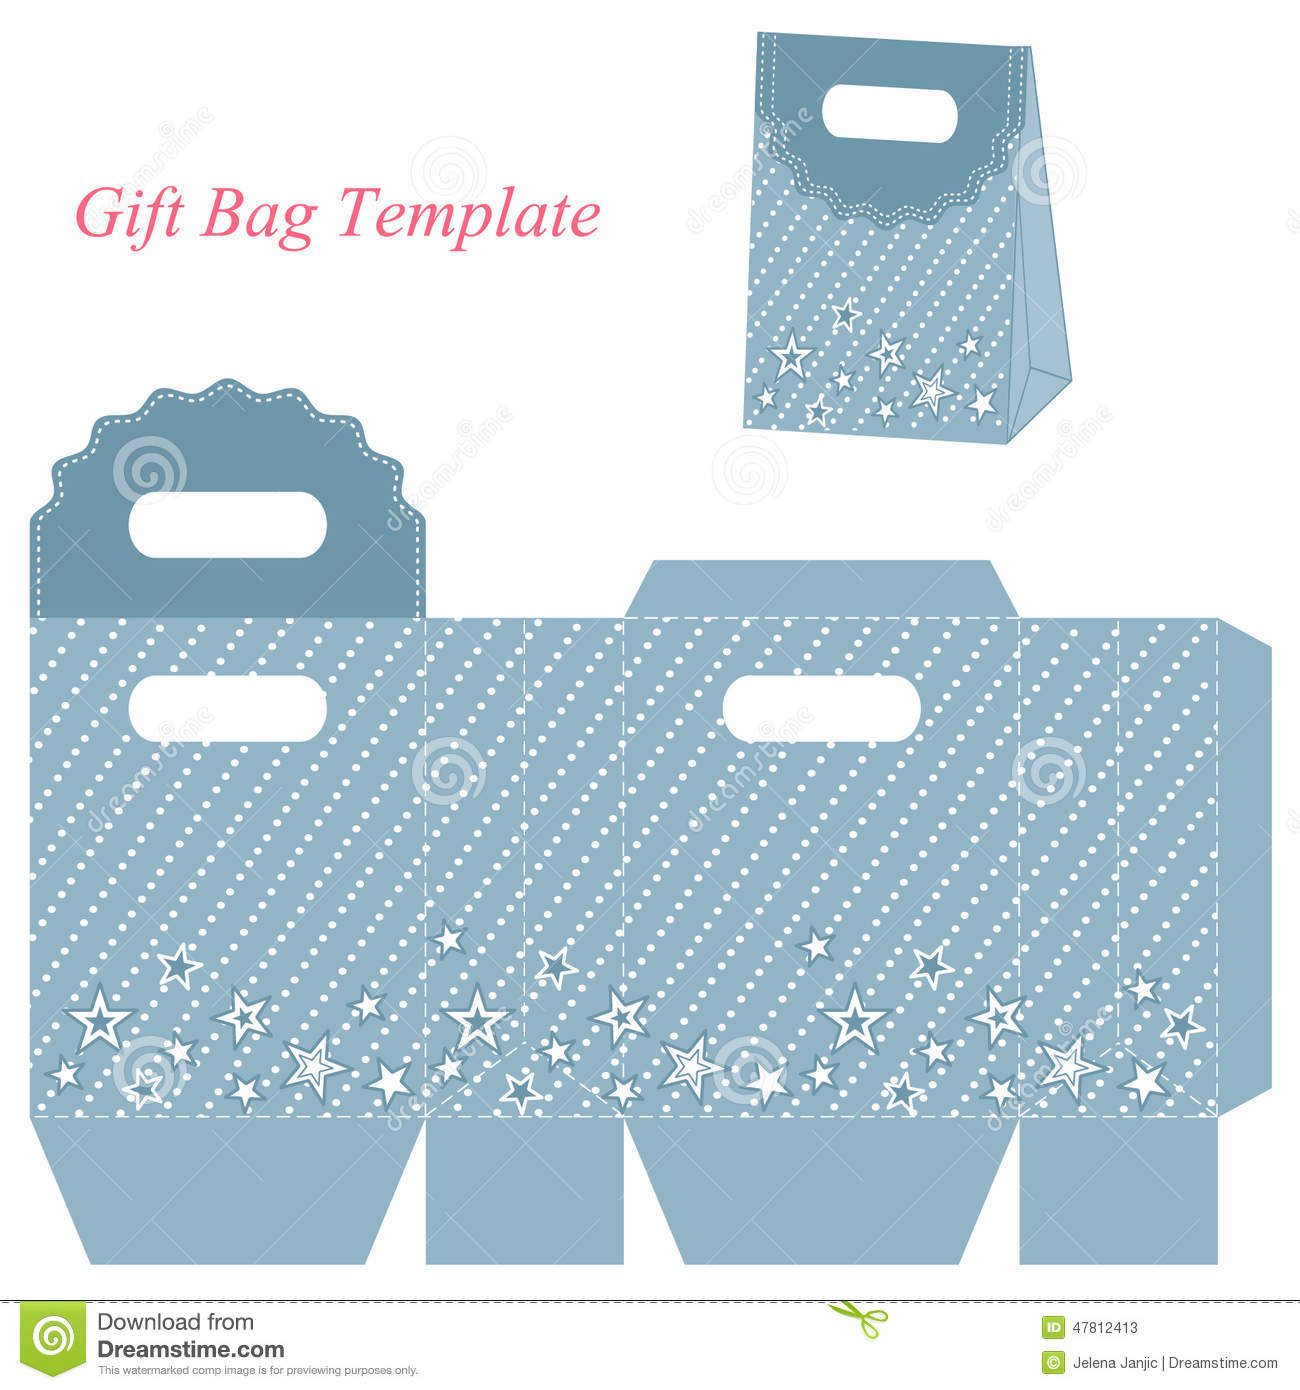 ... gift box with stars. Vector illustration of a box and box template